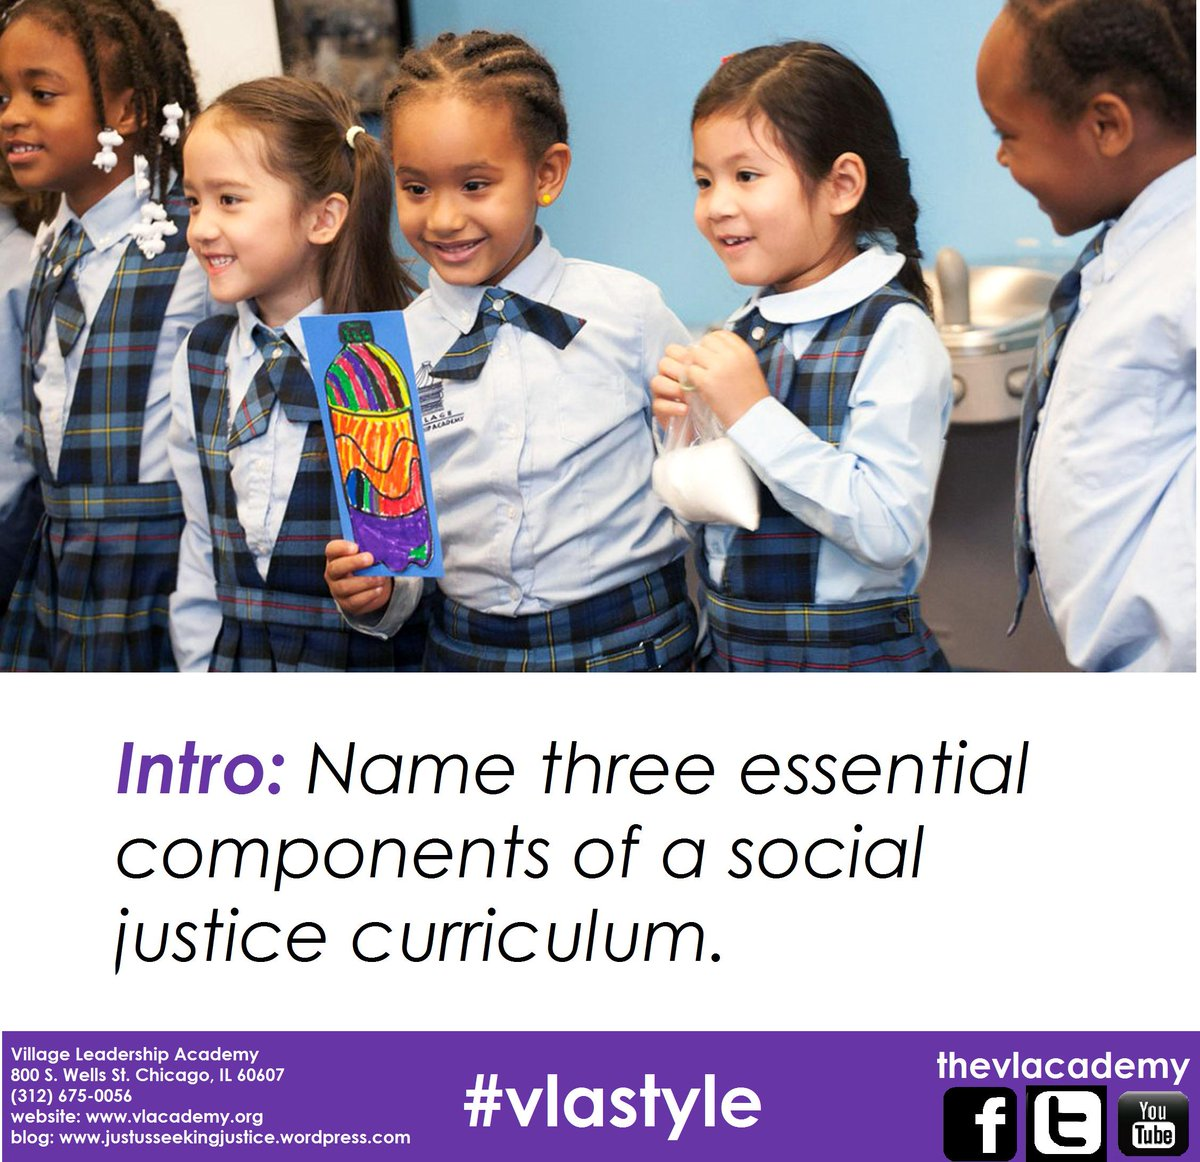 Intro: Name three essential components of a social justice curriculum. #vlastyle http://t.co/sz8GUhqTYP